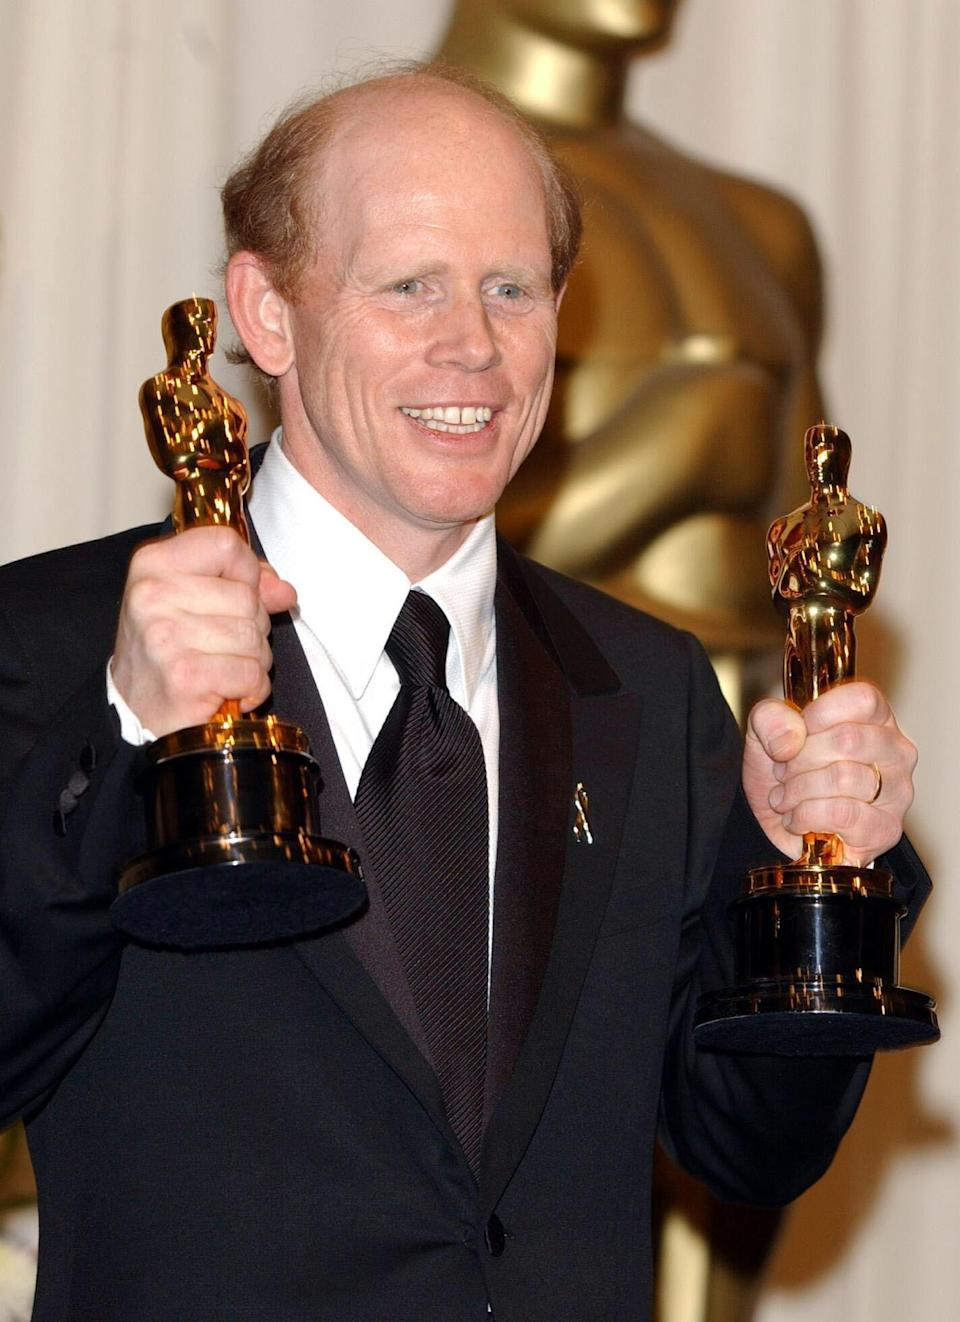 Ron Howard with his Best Director and Best Film awards for A Beautiful Mind at the 74th Annual Academy Awards (Oscars) at the Kodak Theatre in Hollywood, Los Angeles.